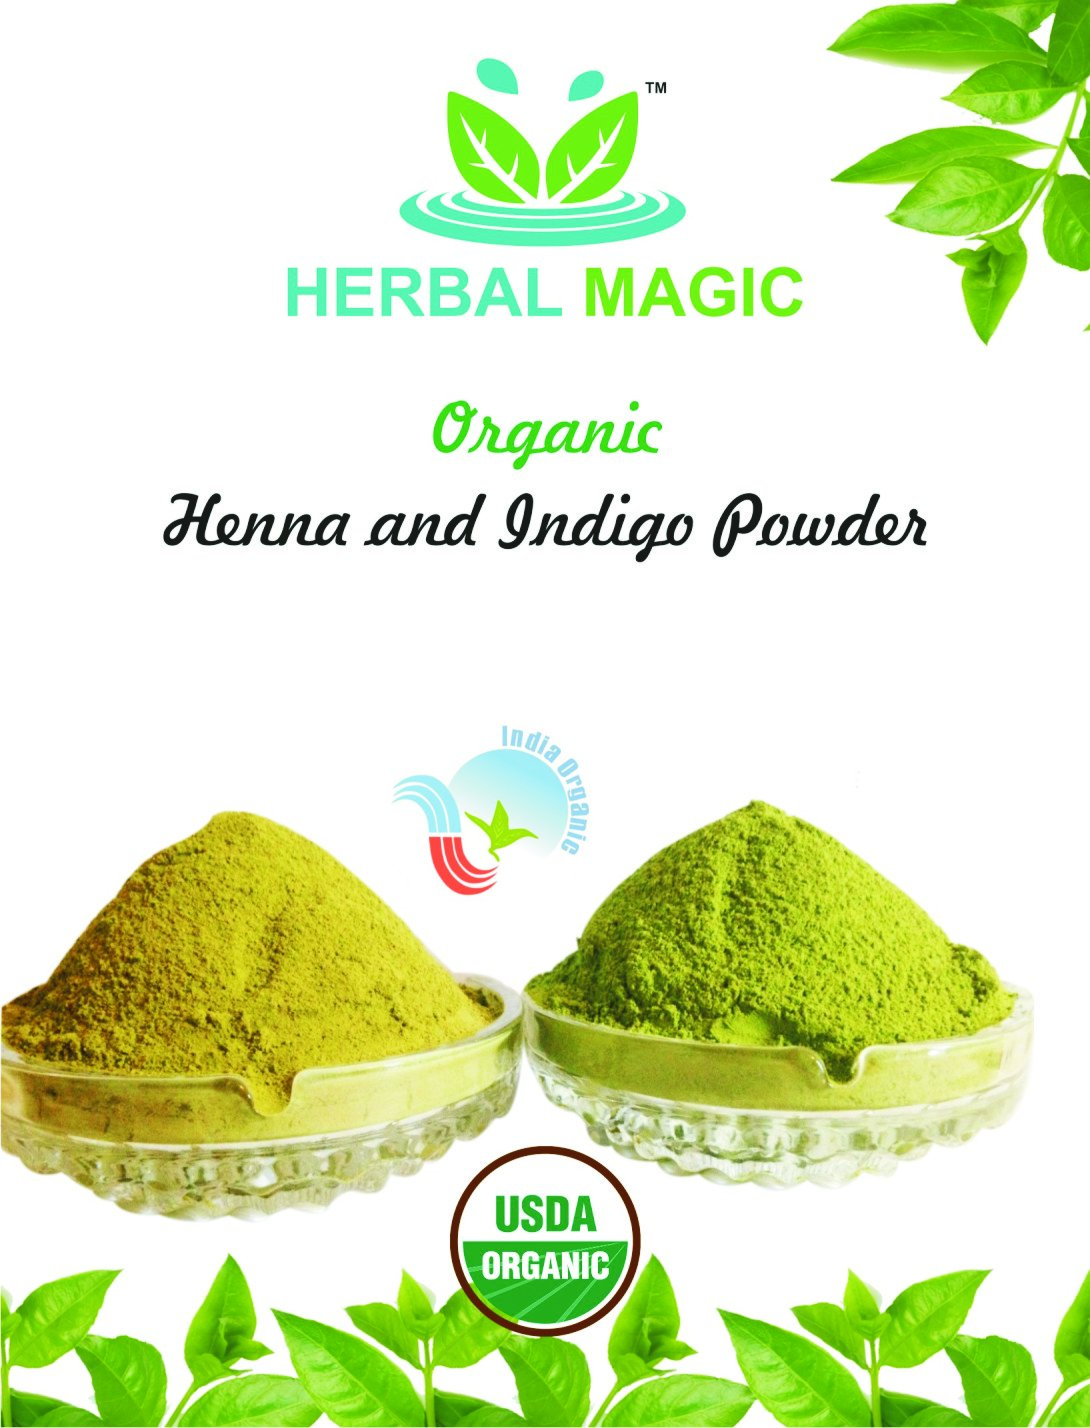 100% PURE & NATURAL 300G PURE HENNA POWDER + 300G PURE INDIGO POWDER / PURE HERBAL HAIR DYE, GO BLACK/BROWN NATURALLY-ONLY BY HERBAL MAGIC - USDA/GMP/HALAL/ISO CERT - 600G SUPPLY KIT NATURAL HAIR DYE GROWTH CONDITIONER ANTI HAIR LOSS DANDRUFF FREE SCA